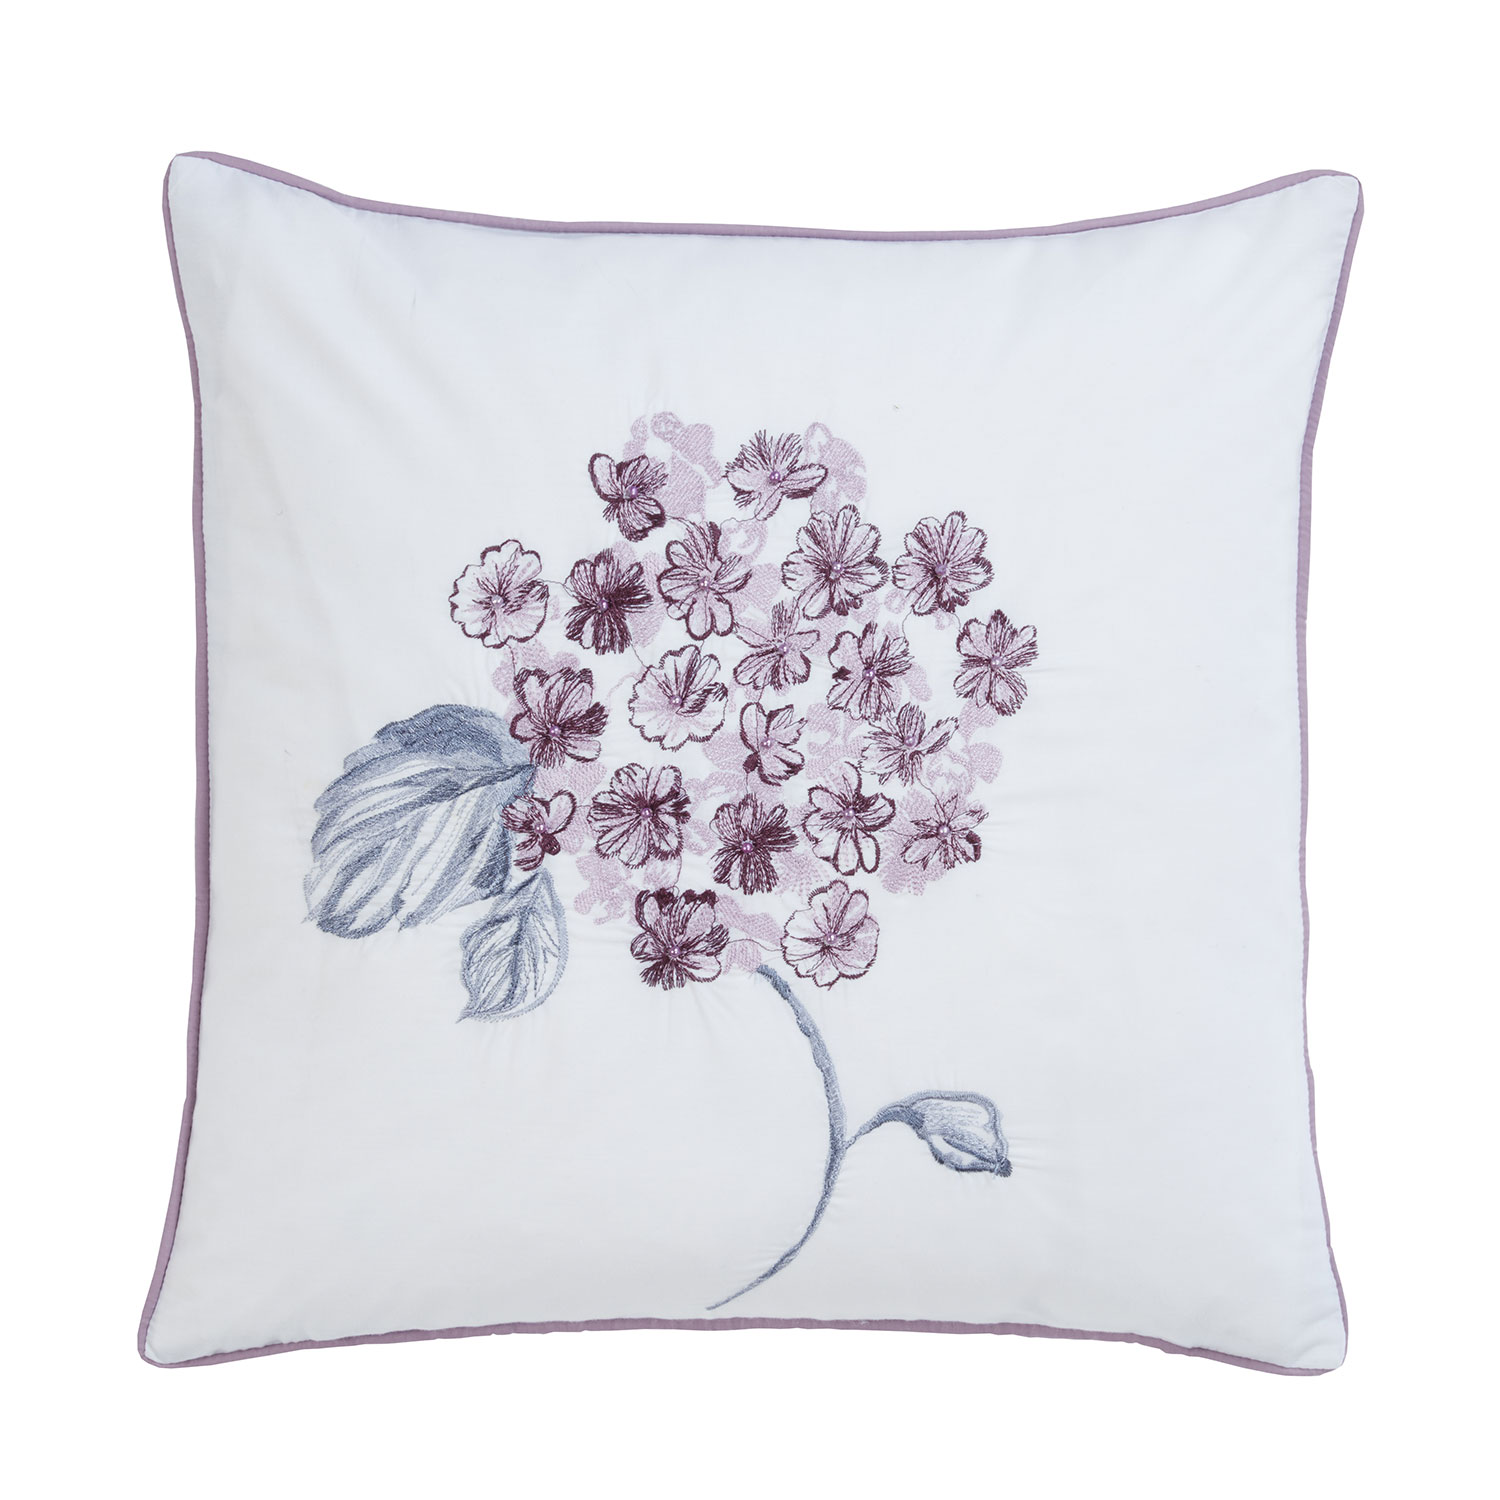 Stockists of Abigail Plum Pure Cotton Luxury Filled Square Cushion